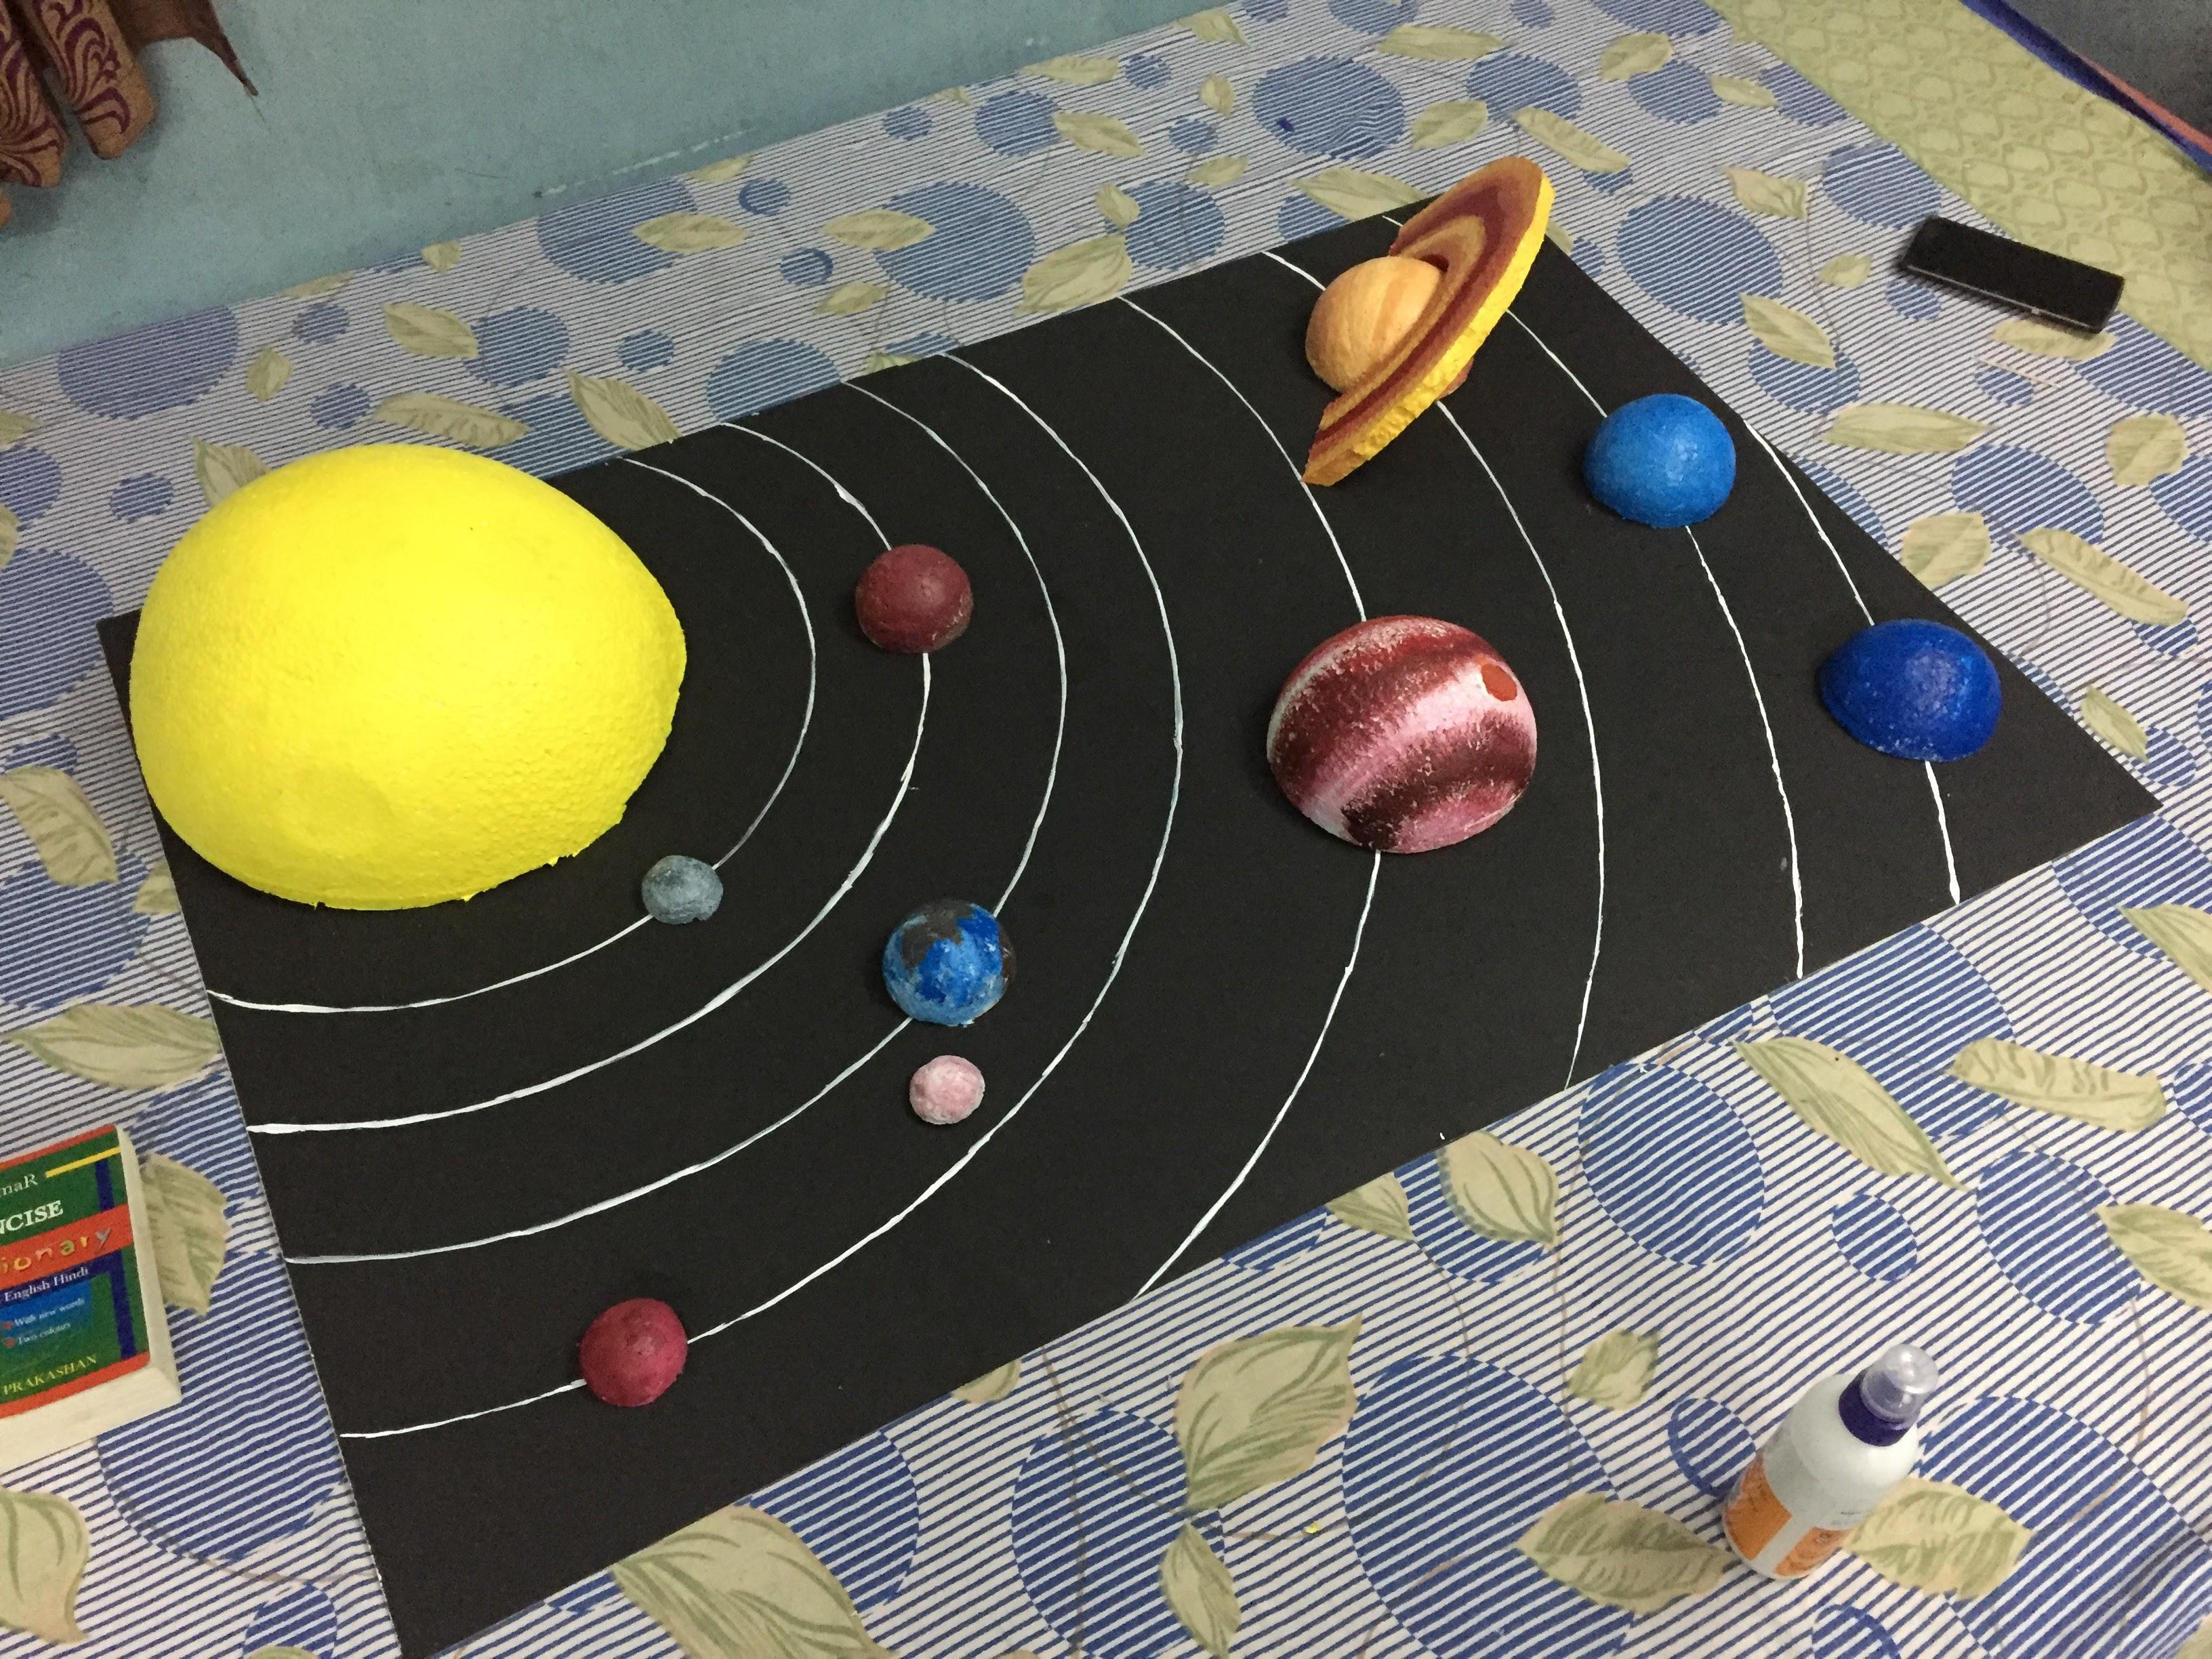 I Made A Solar System Model Chart For My Cousin She Loved